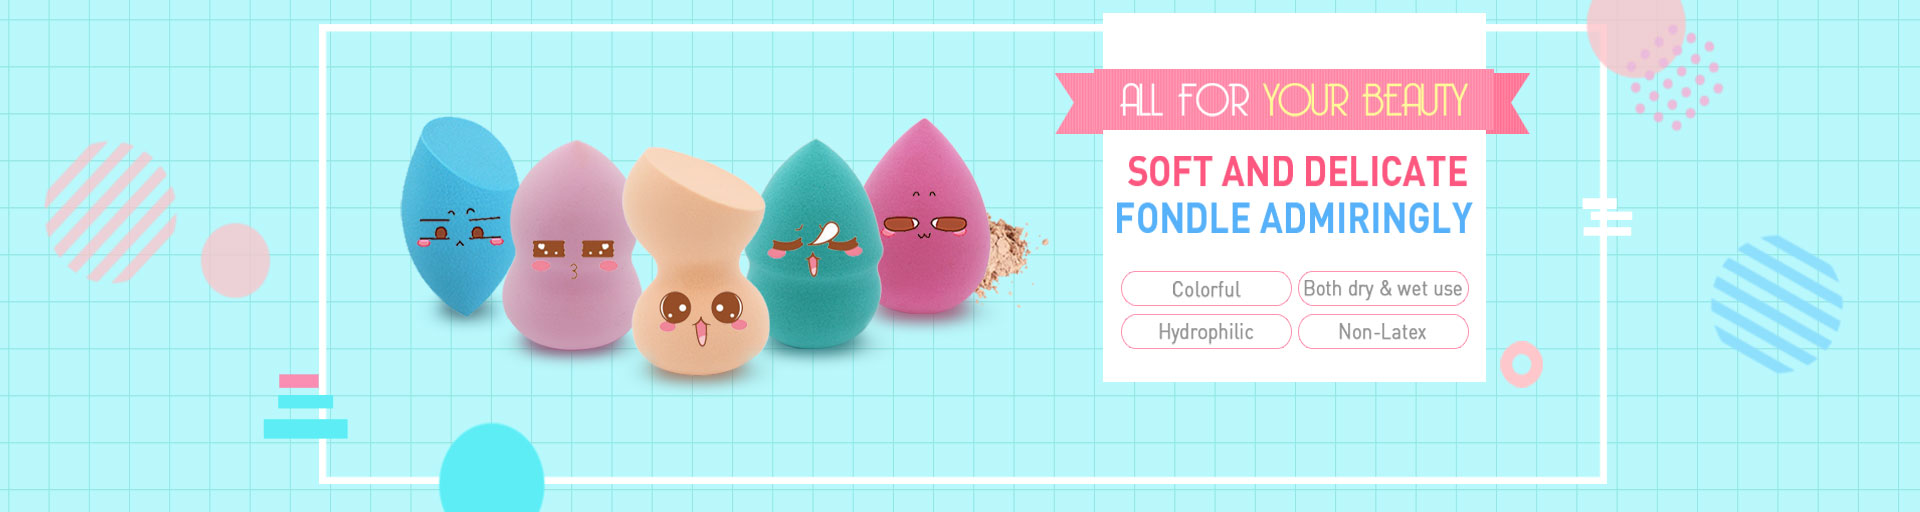 Non-latex Sponge Powder Puff